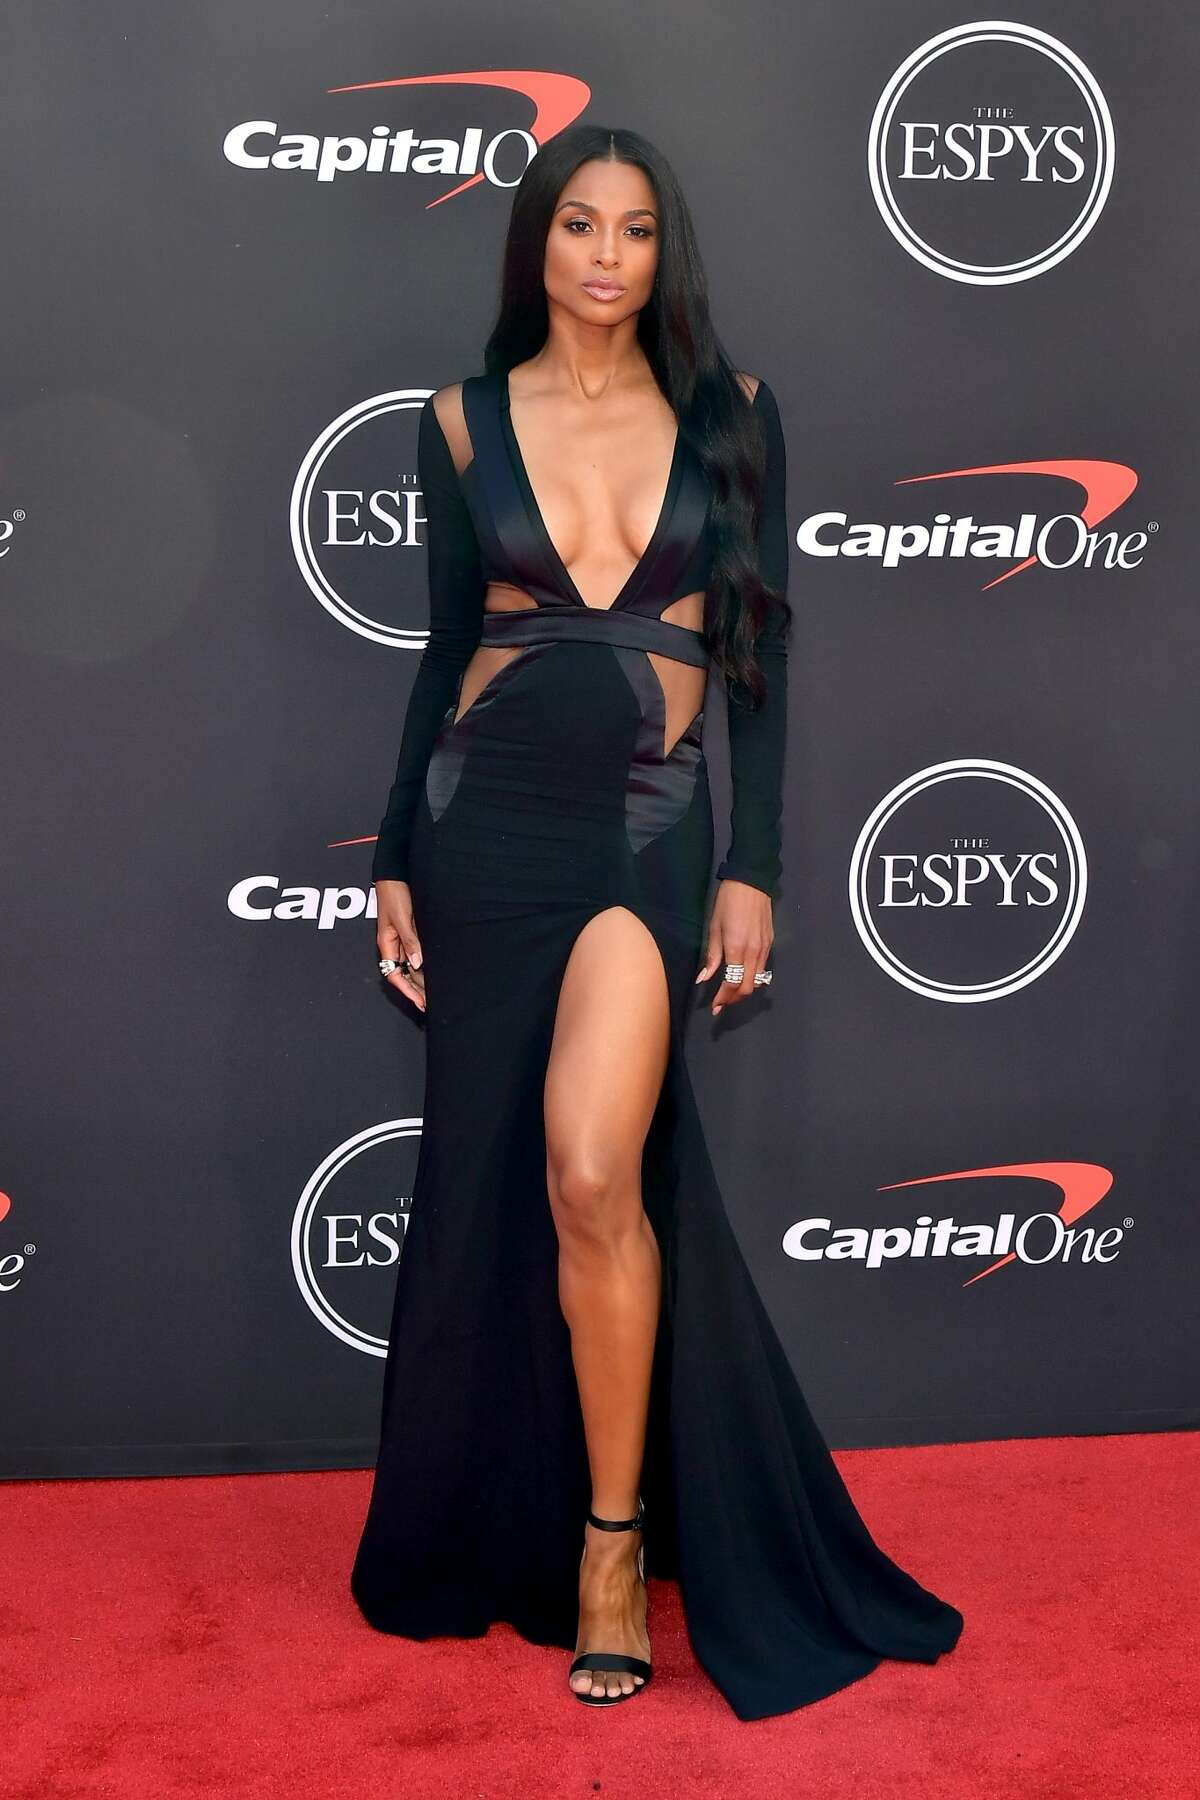 LOS ANGELES, CALIFORNIA - JULY 10: Ciara attends The 2019 ESPYs at Microsoft Theater on July 10, 2019 in Los Angeles, California. (Photo by Matt Winkelmeyer/Getty Images)